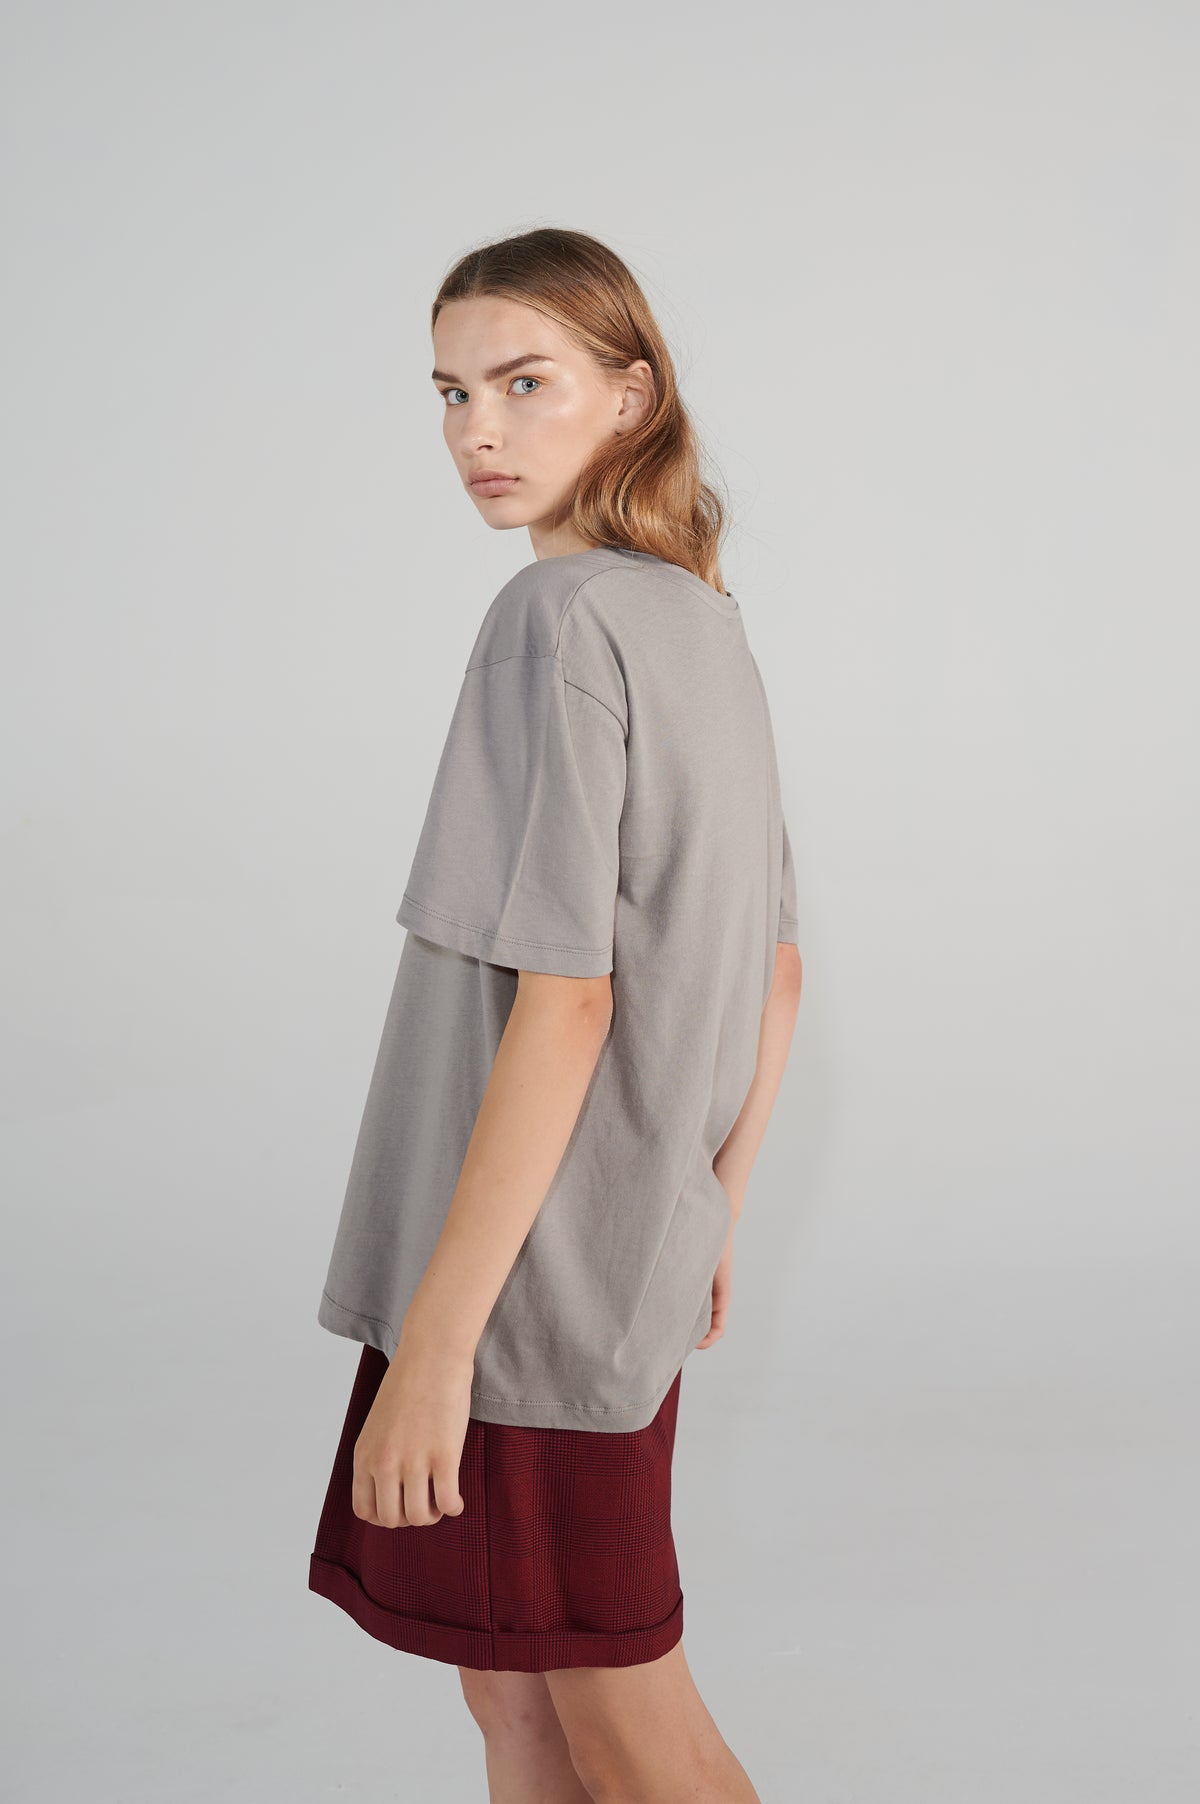 russki-tshirt-organic-cotton-oversize-fit-round-neck-short-sleeves.jpg